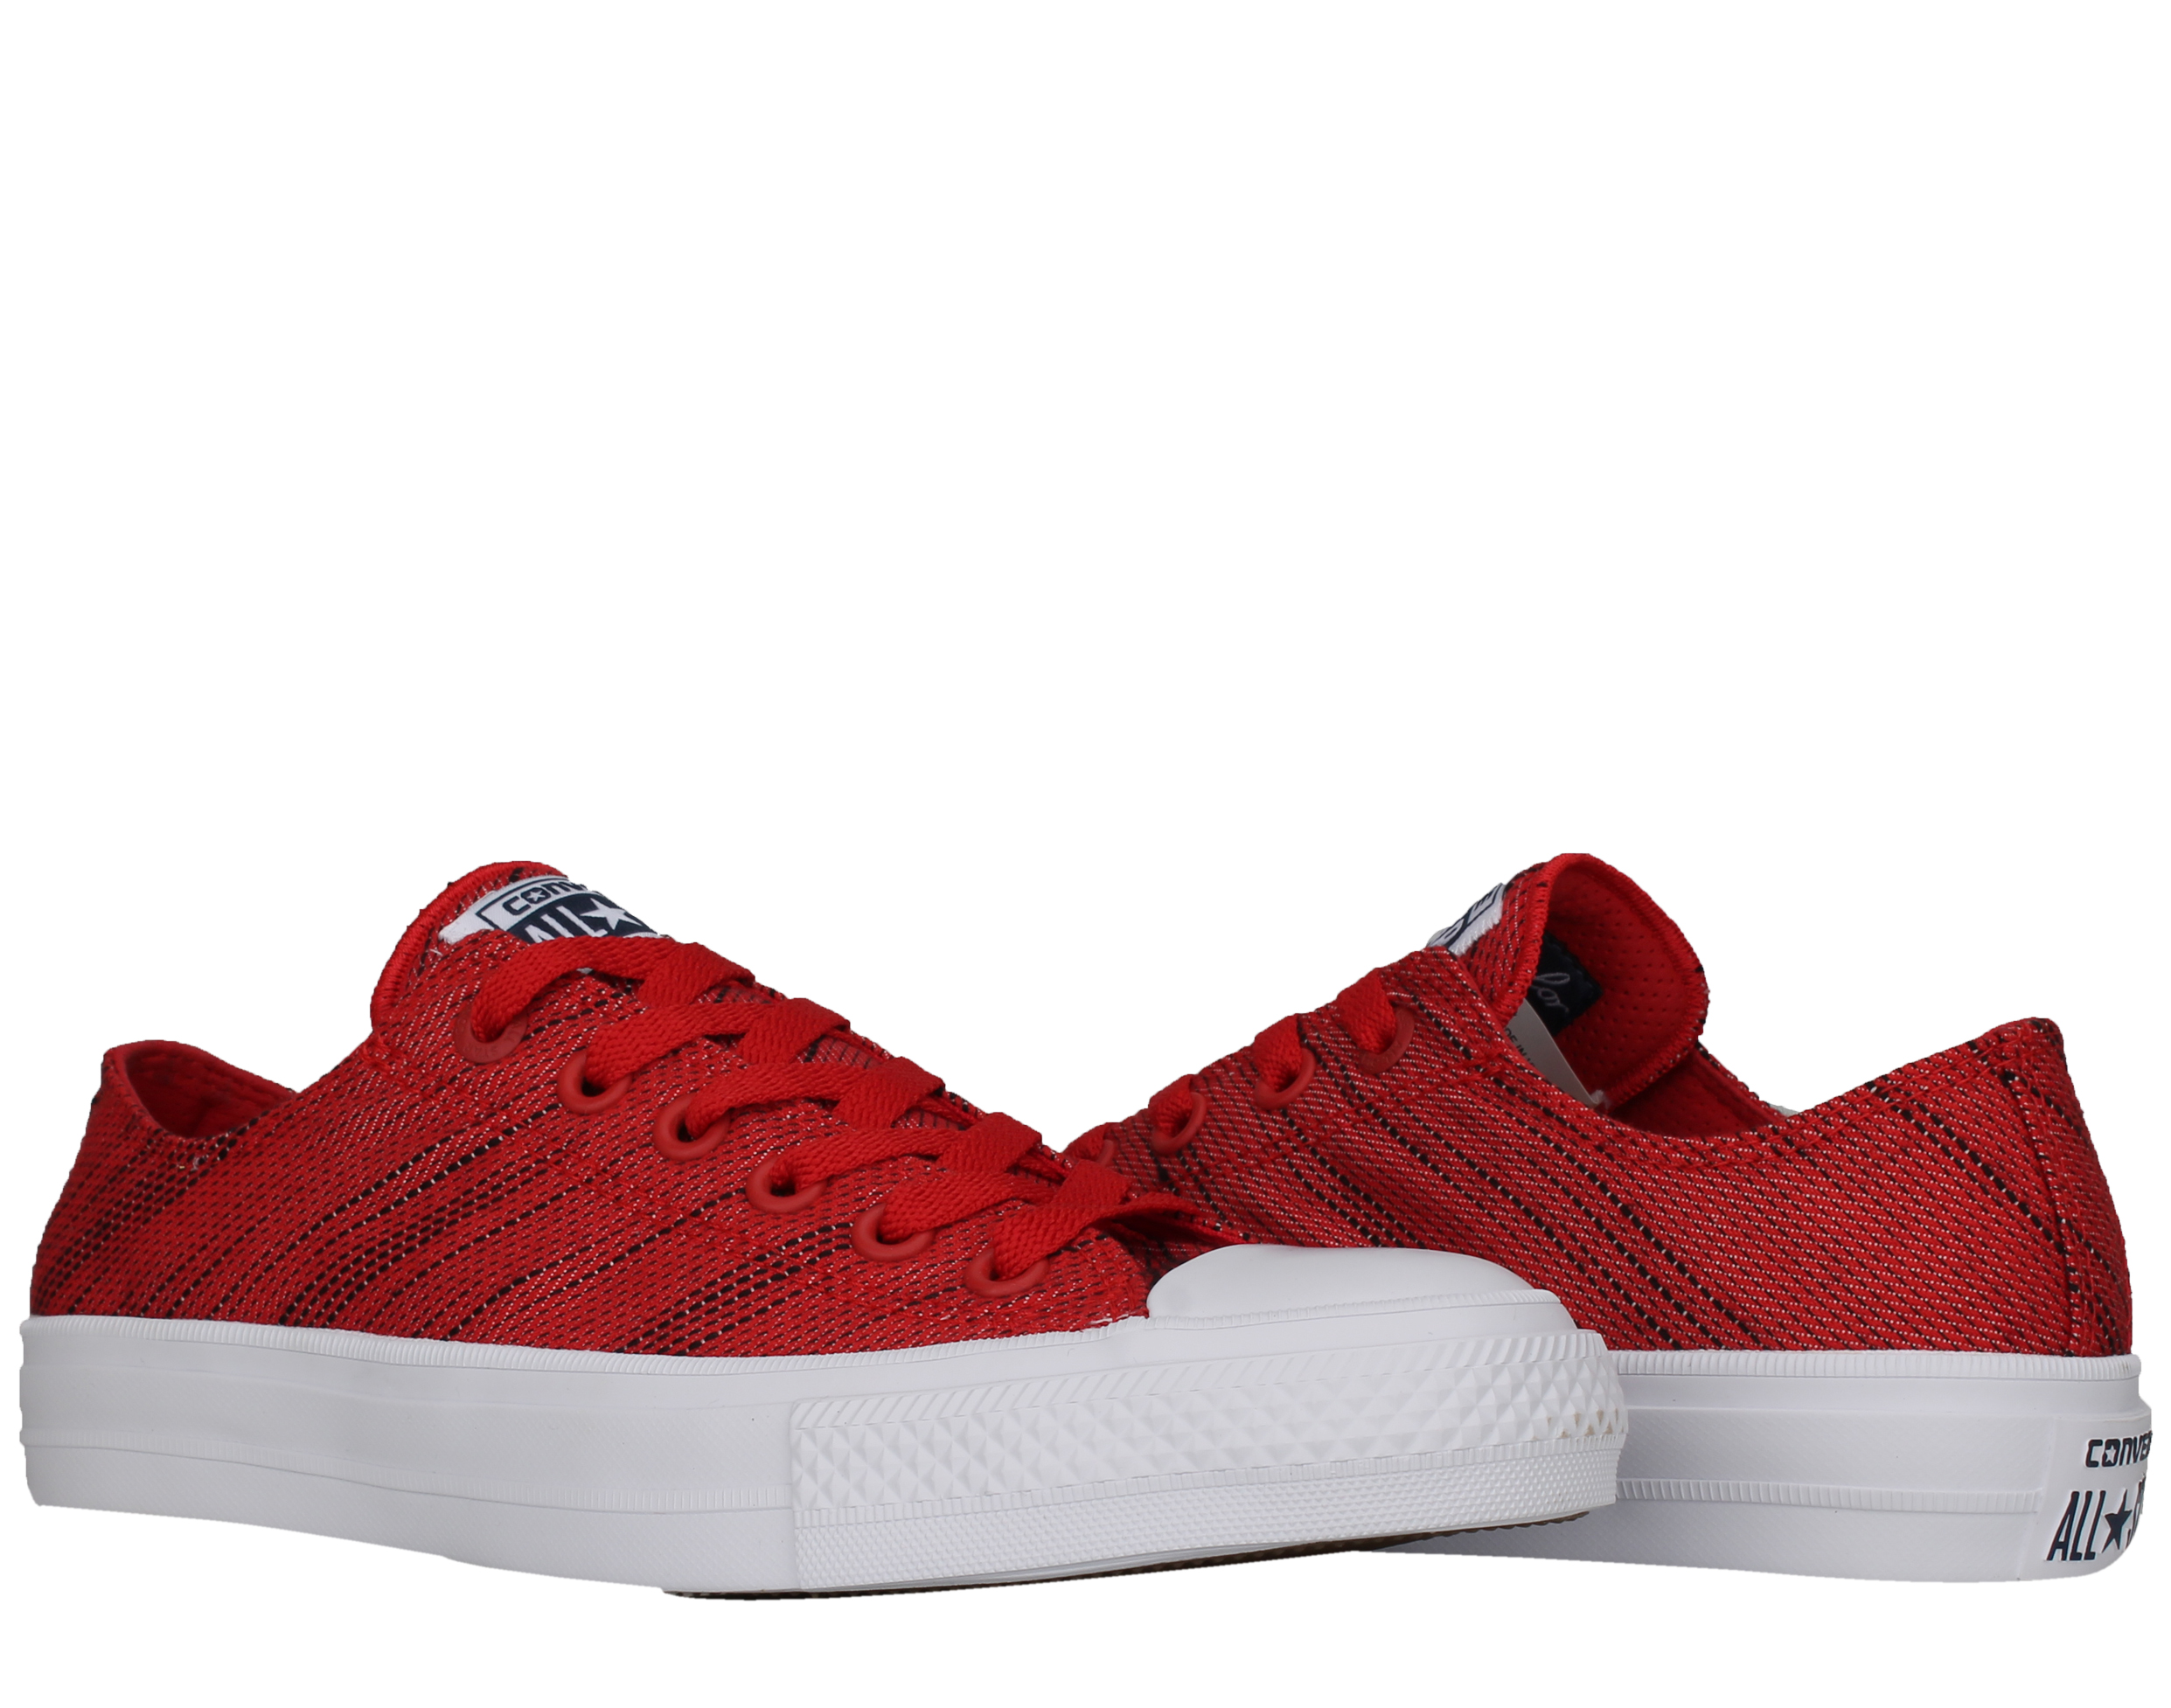 Converse Chuck Taylor All Star II Low Top Red Black White Men's Shoes 151090C by Converse